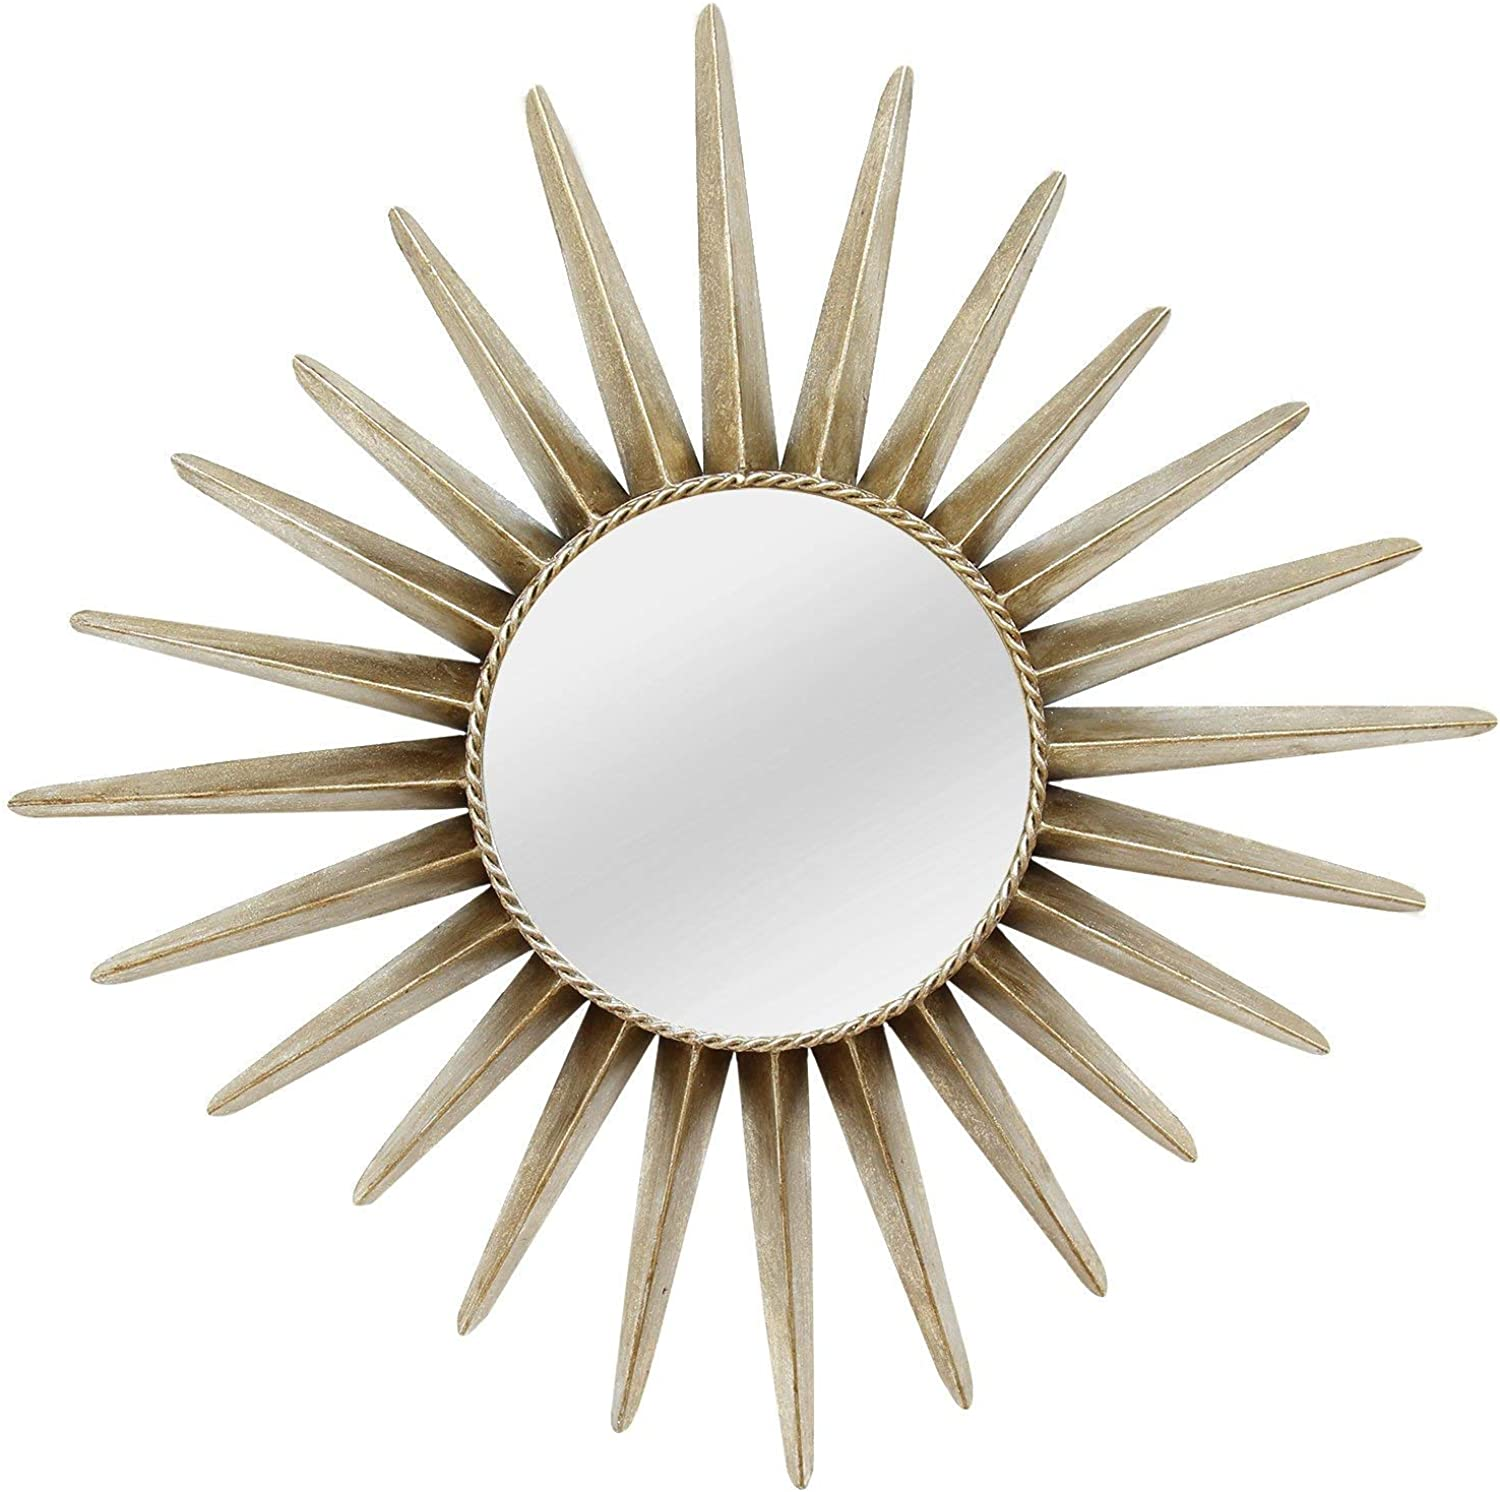 HomeRoots Furniture Round Sunburst Wall Mirror (321366)